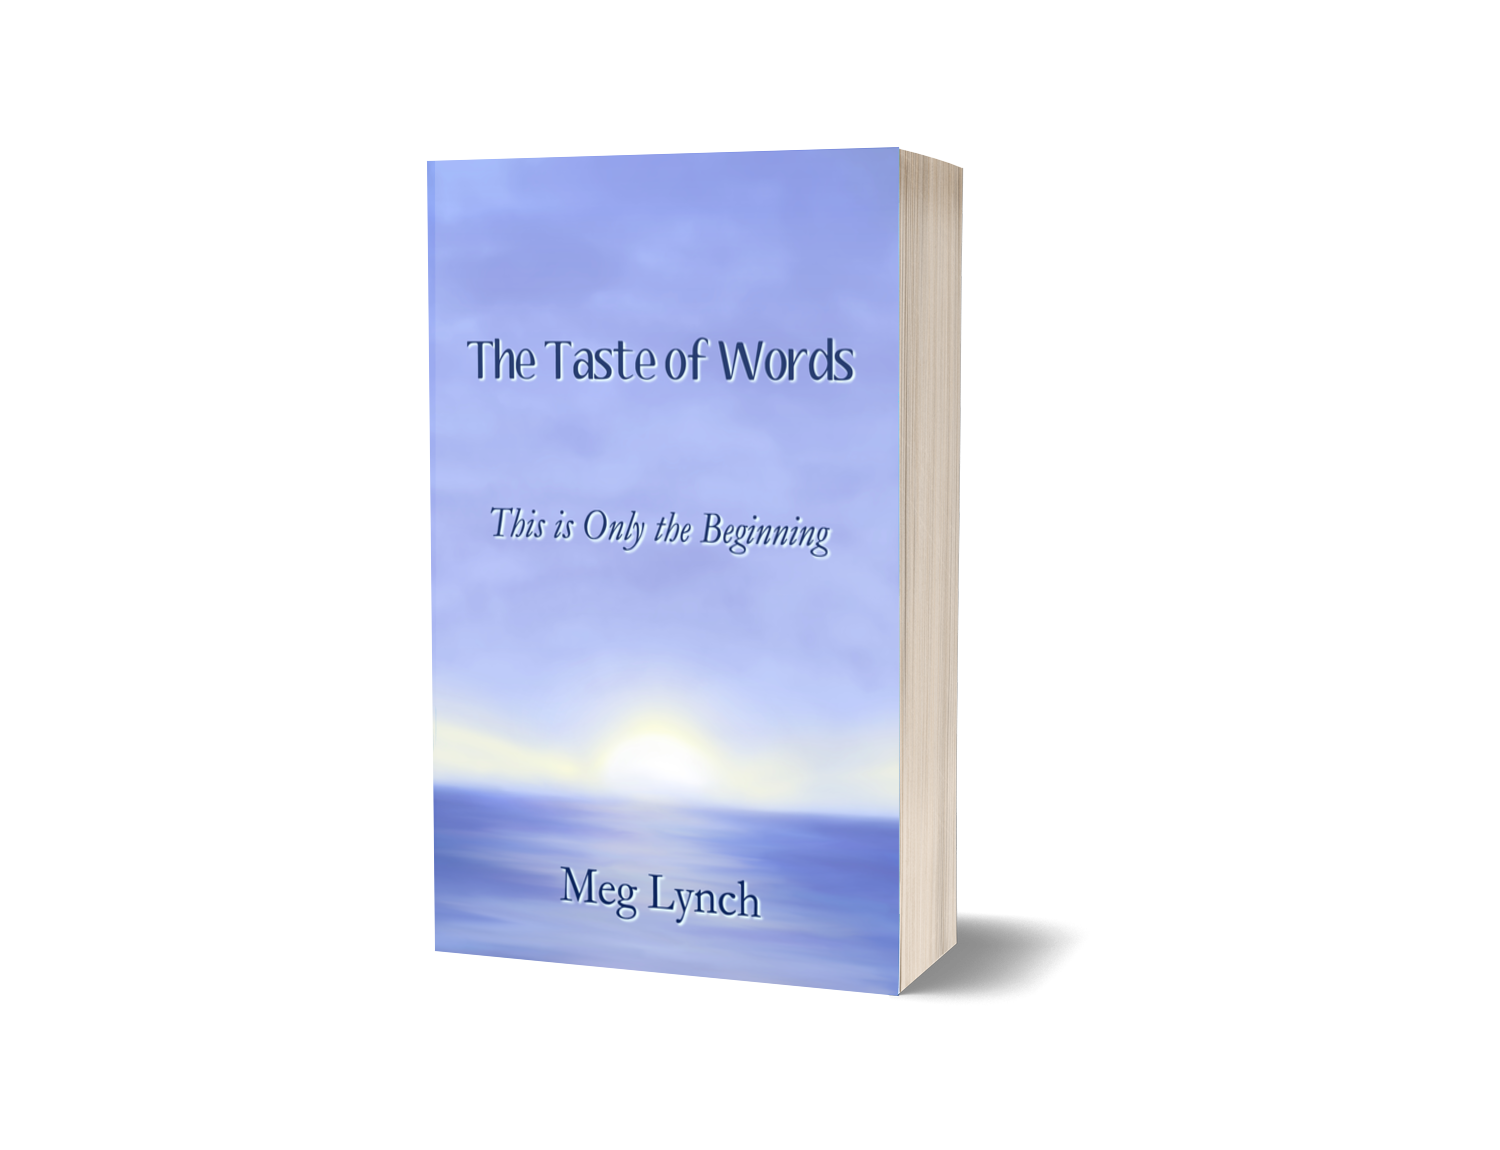 The Taste of Words: This is Only the Beginning by Meg Lynch